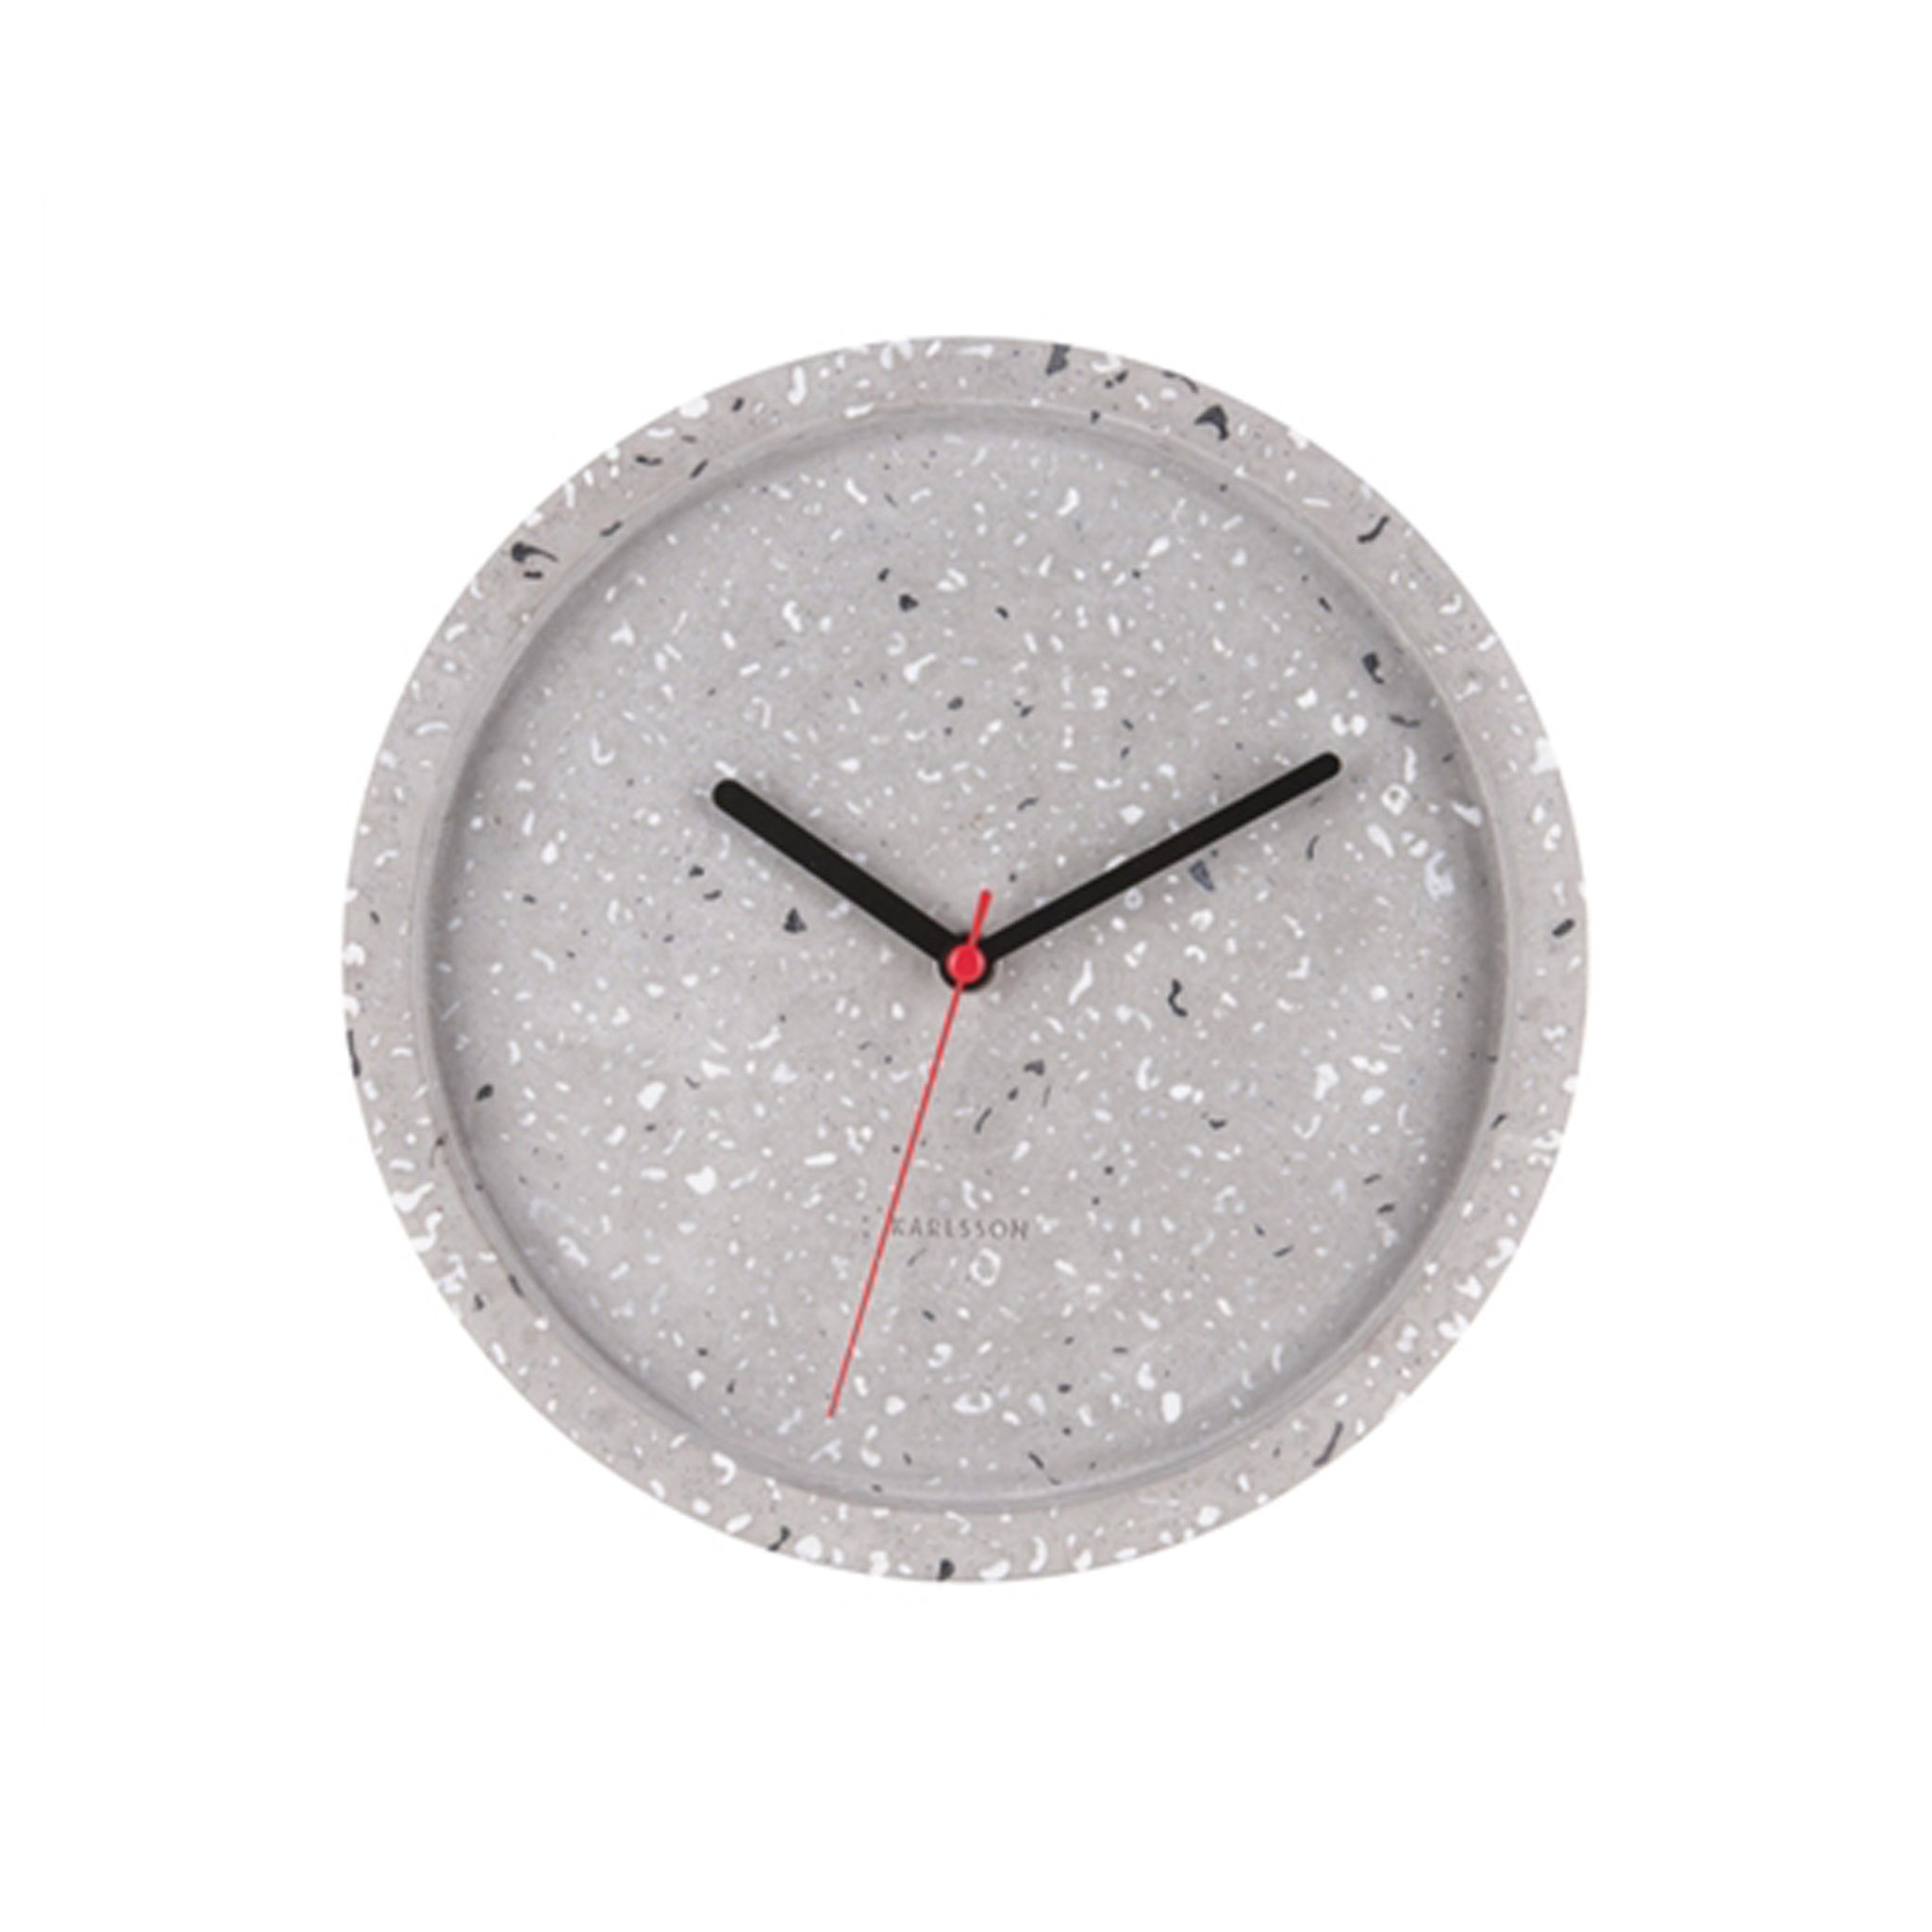 Grey Terrazzo Wall Clock - Five And Dime